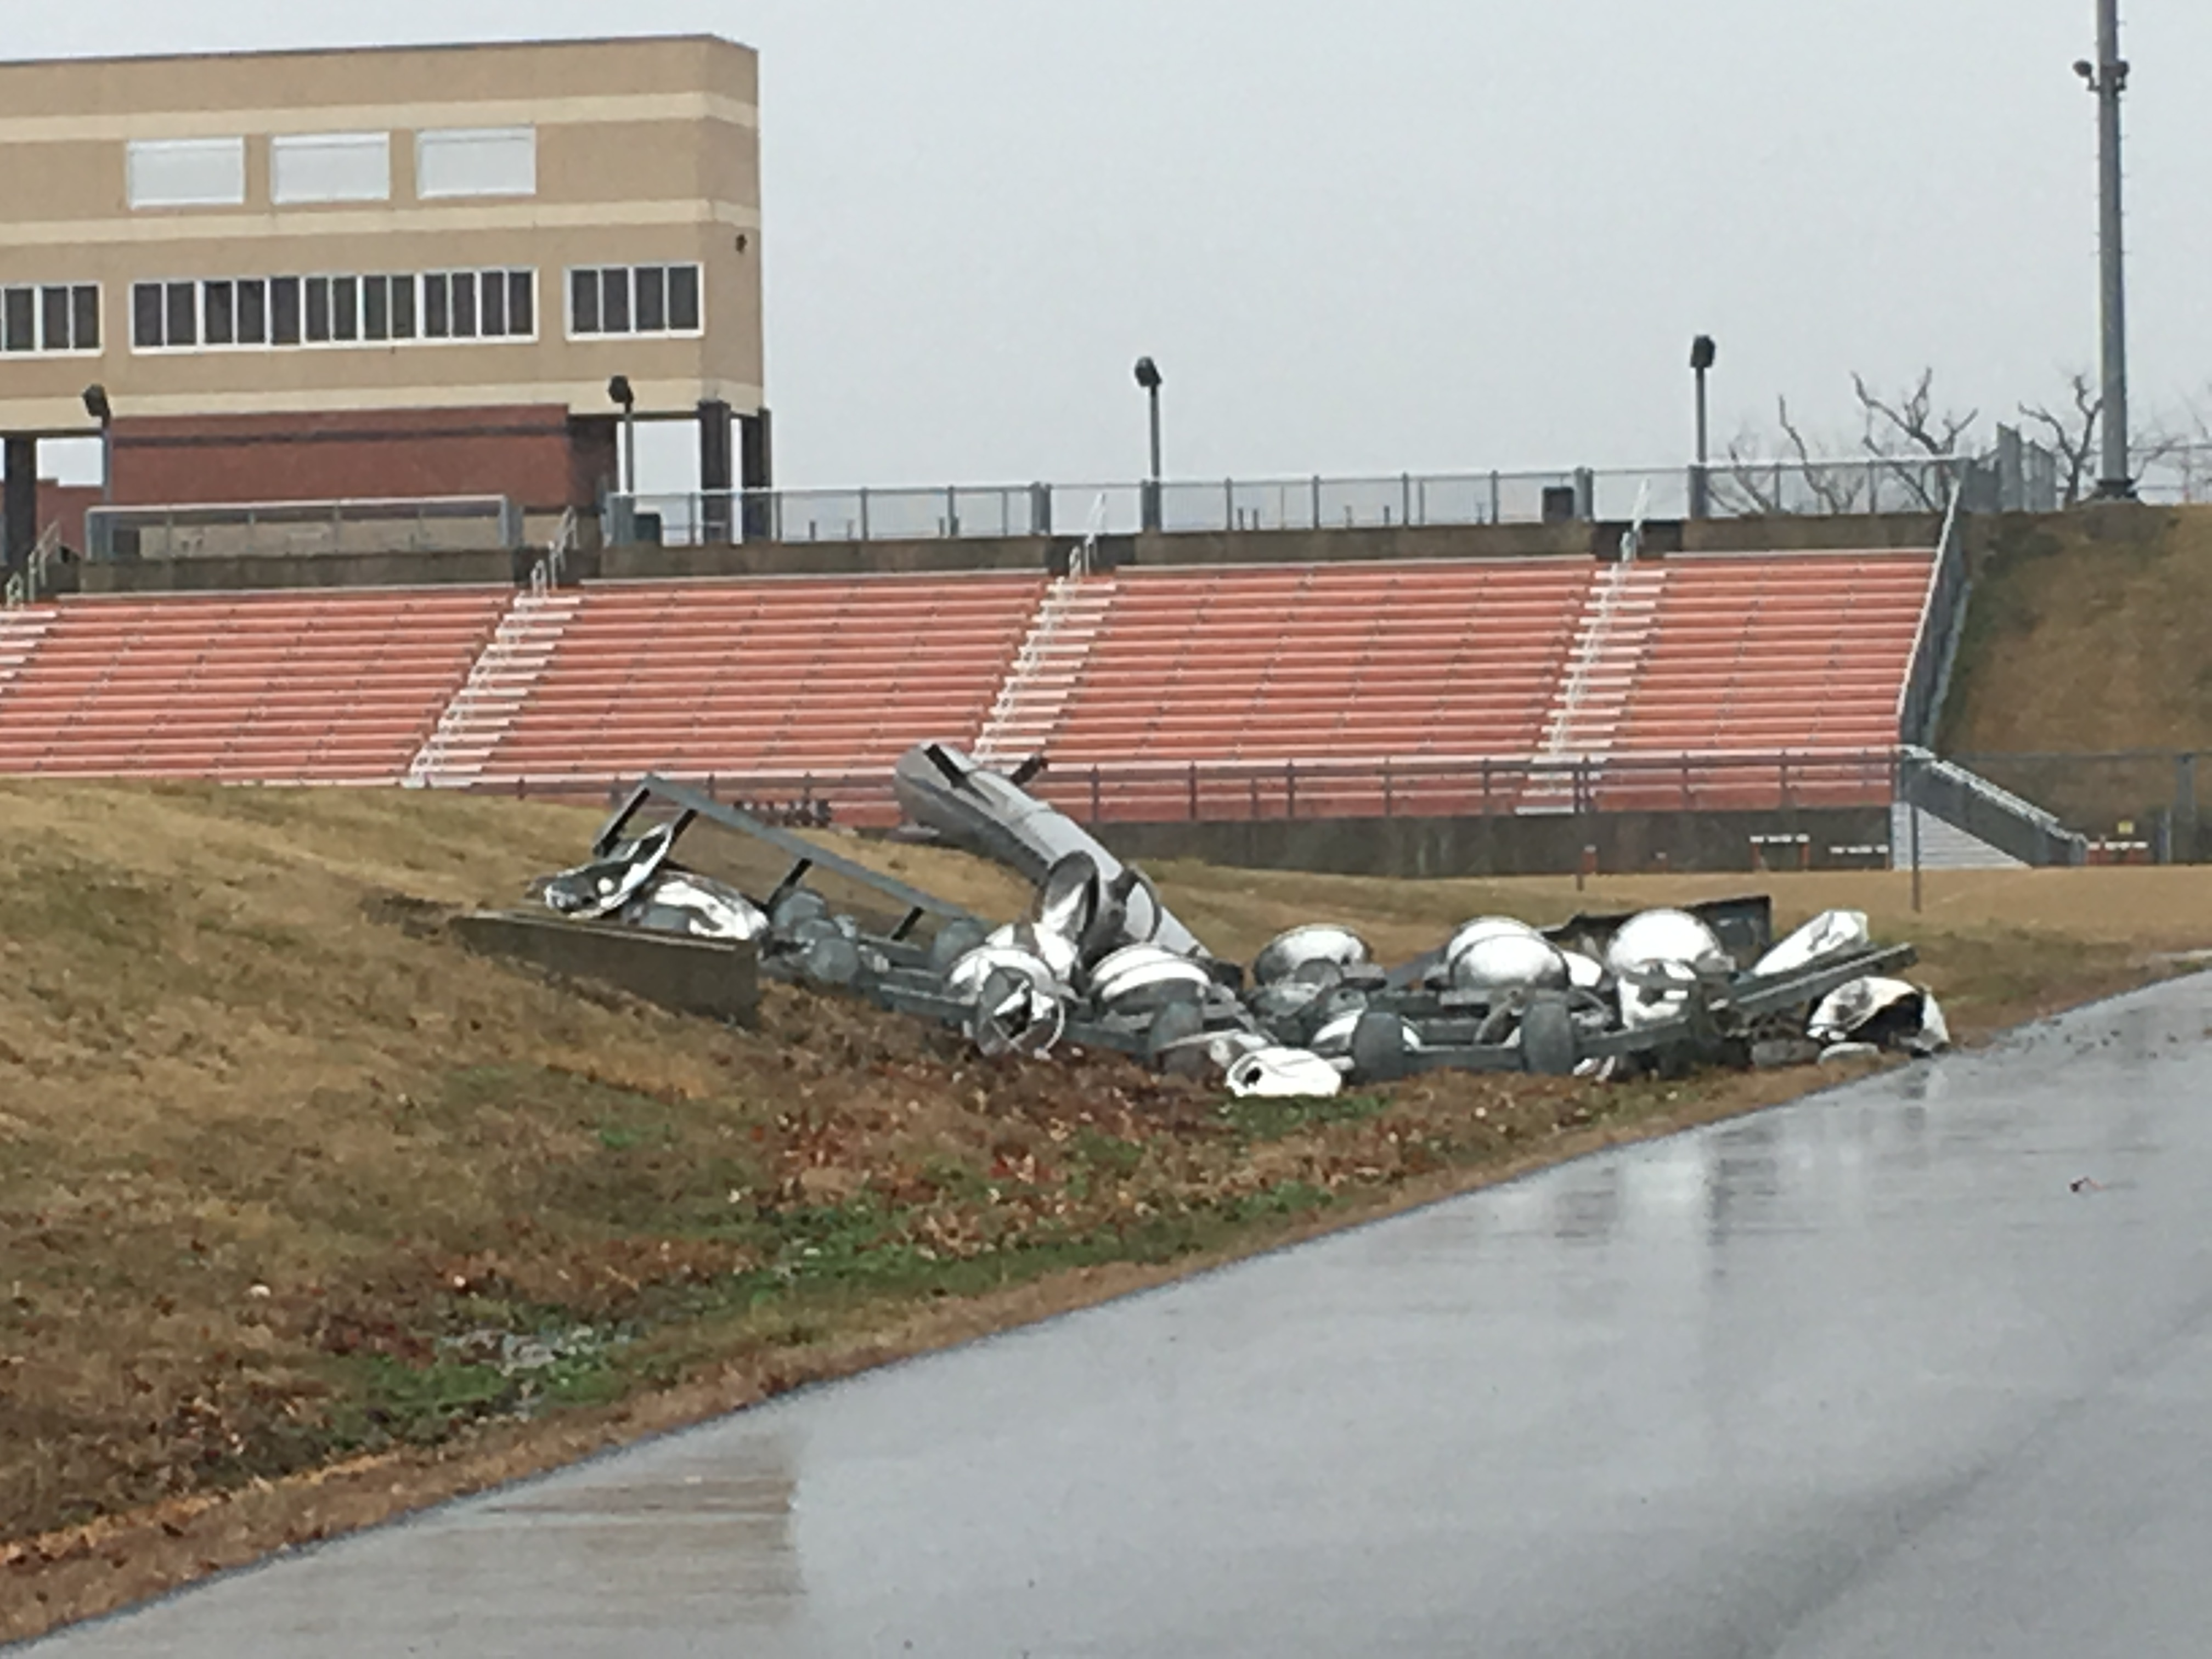 A light pole fell at the Gravette High School football stadium on Wednesday, March 13, 2019, as high winds moved into the area. (Photo by Kathryn Gilker/5NEWS)